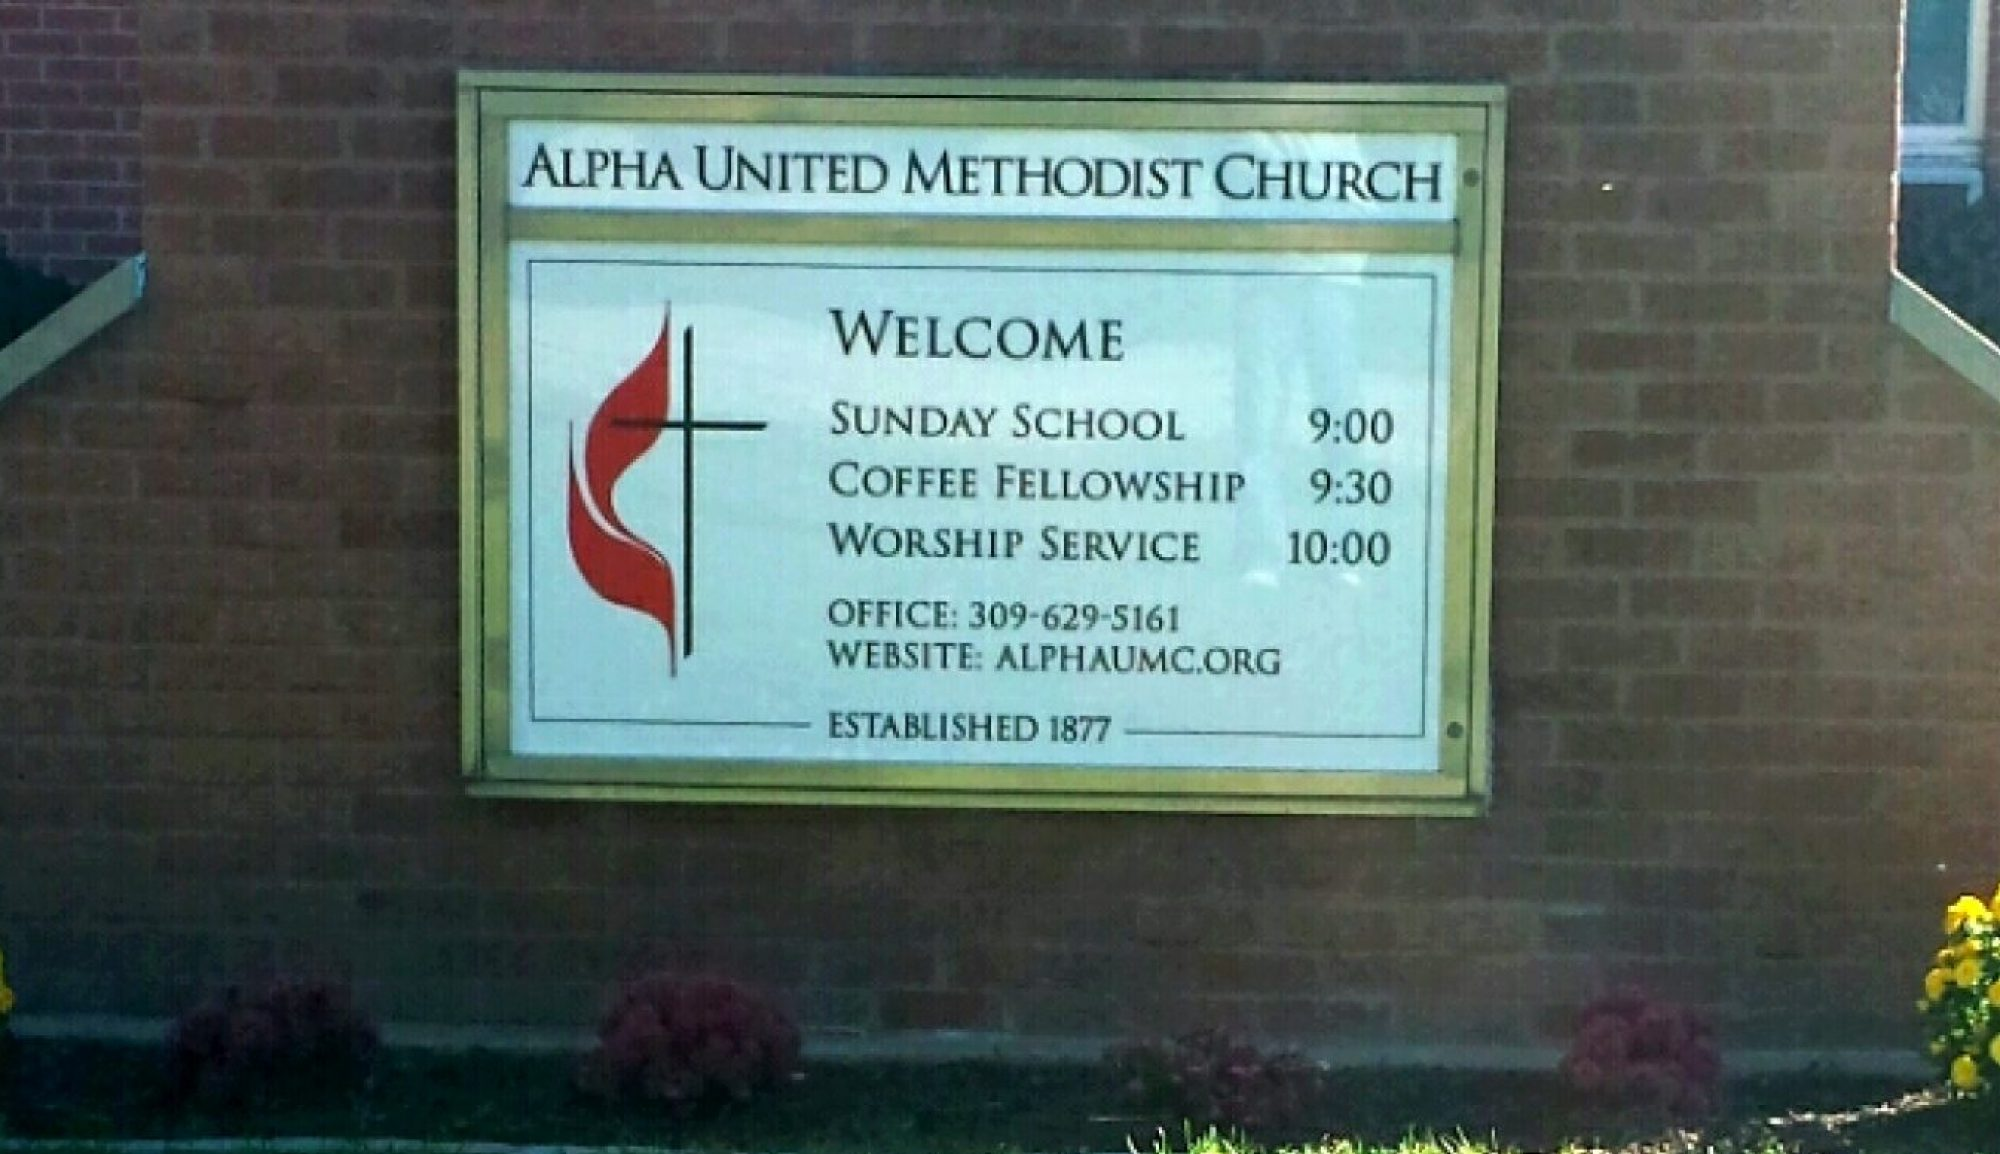 Alpha Methodist Church